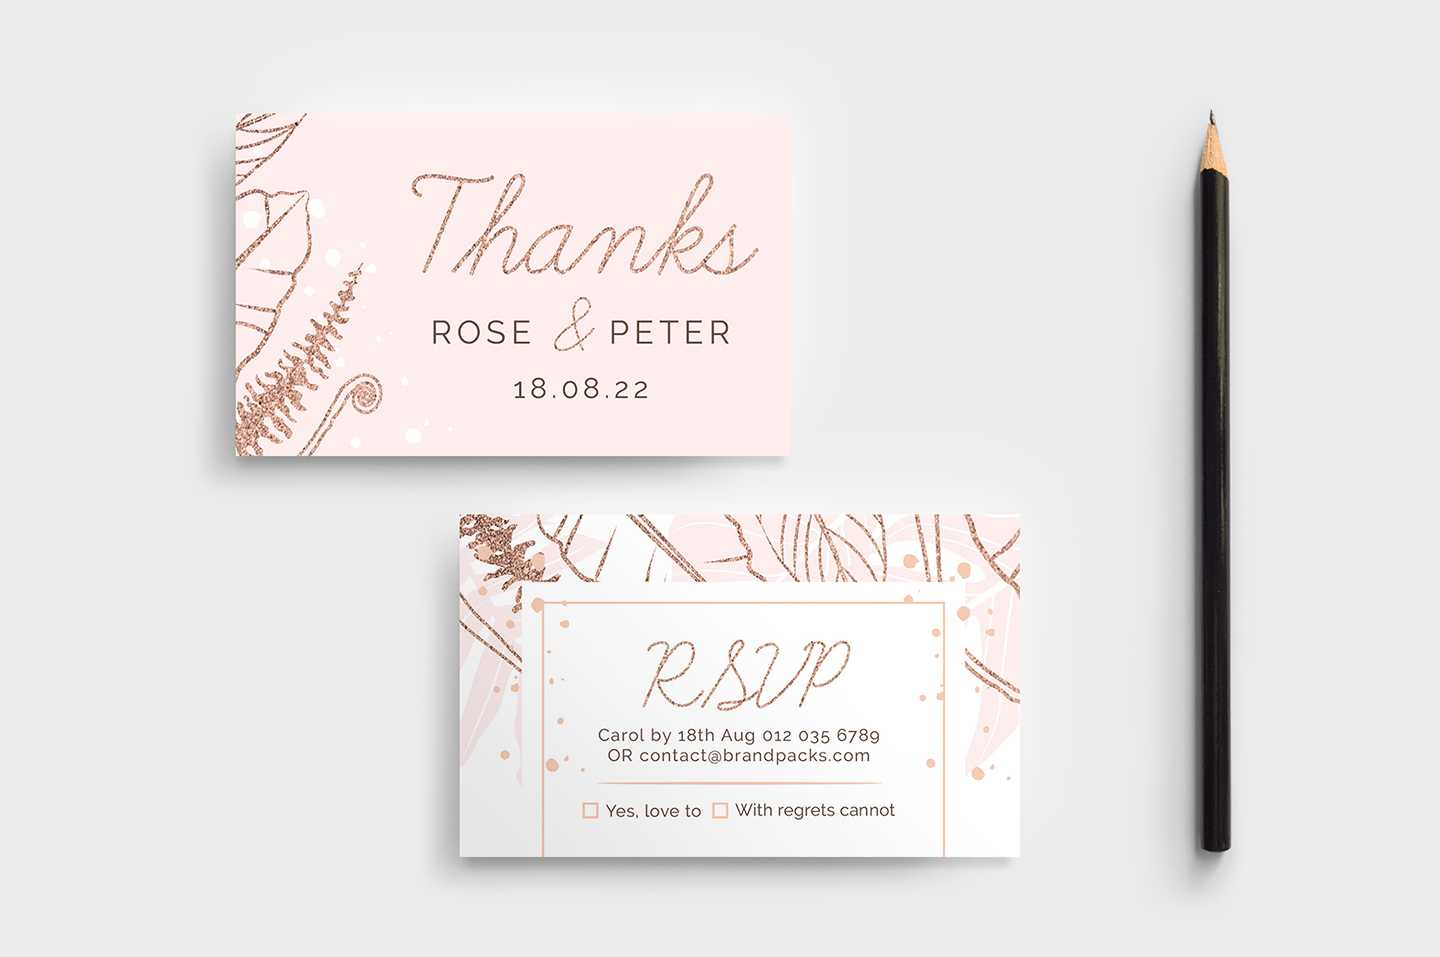 Rose Gold Wedding Rsvp Card Template - Brandpacks Inside Template For Rsvp Cards For Wedding